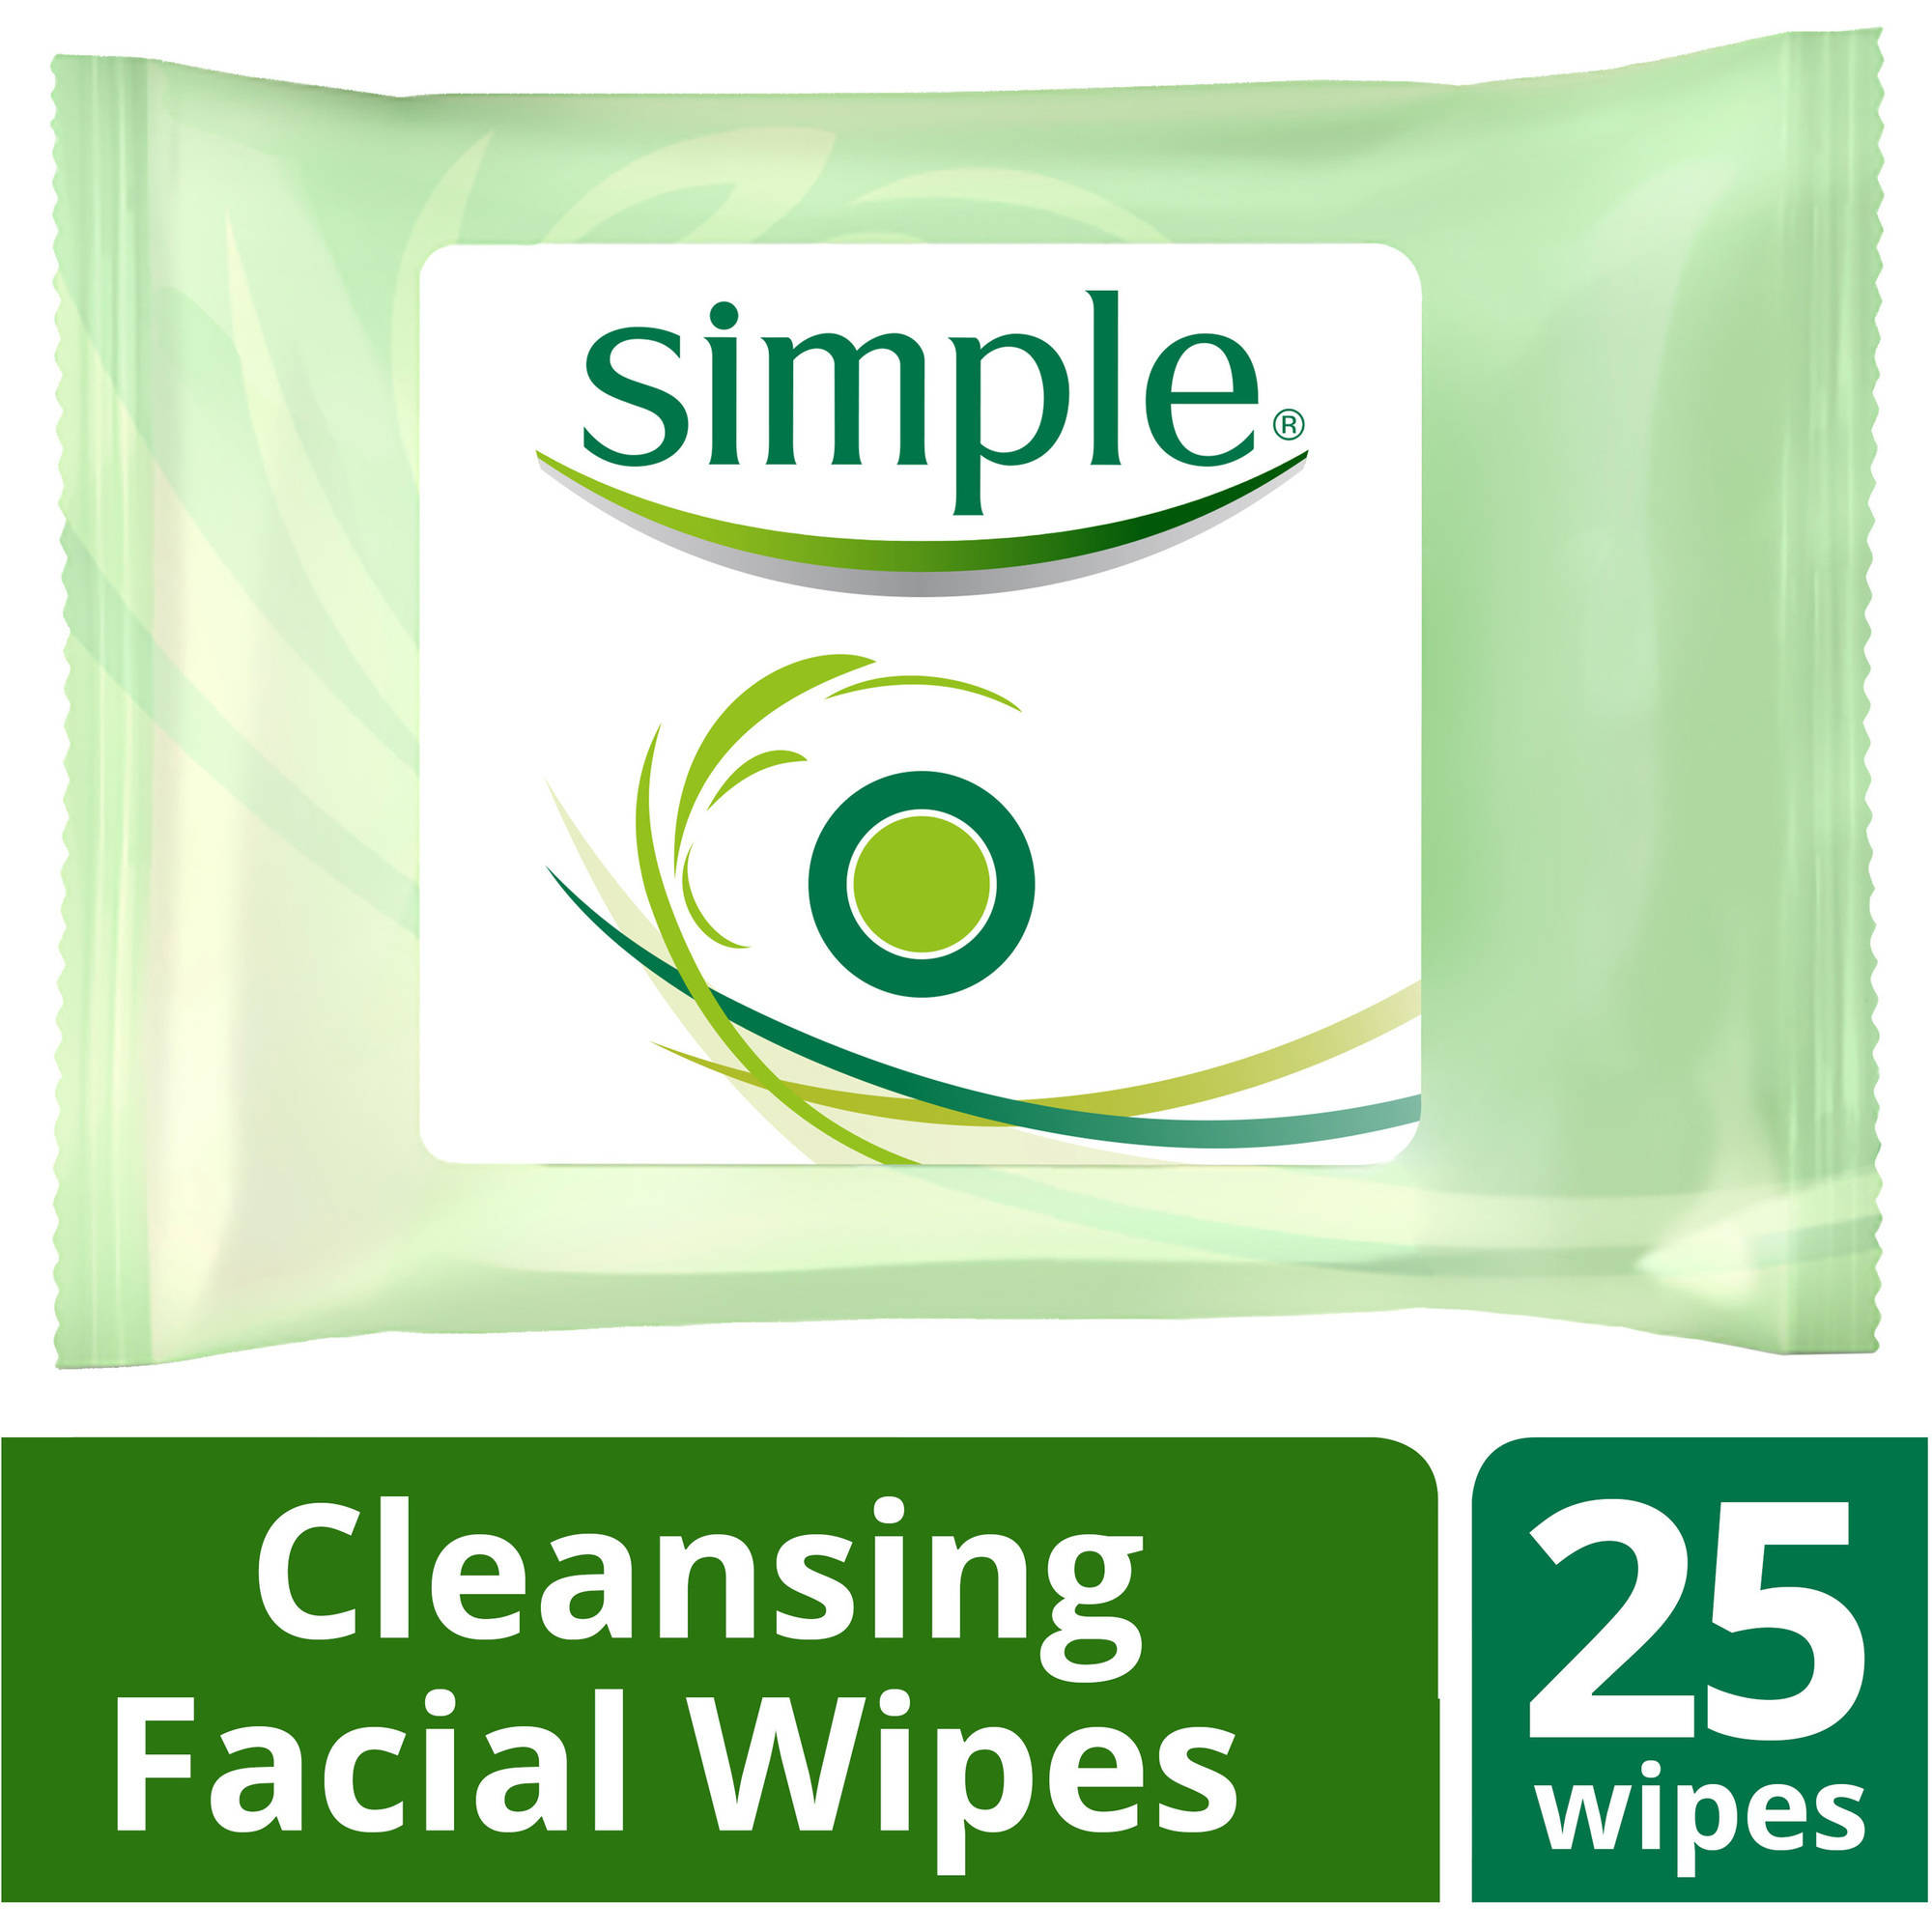 Simple Cleansing Facial Wipes, 25 ct